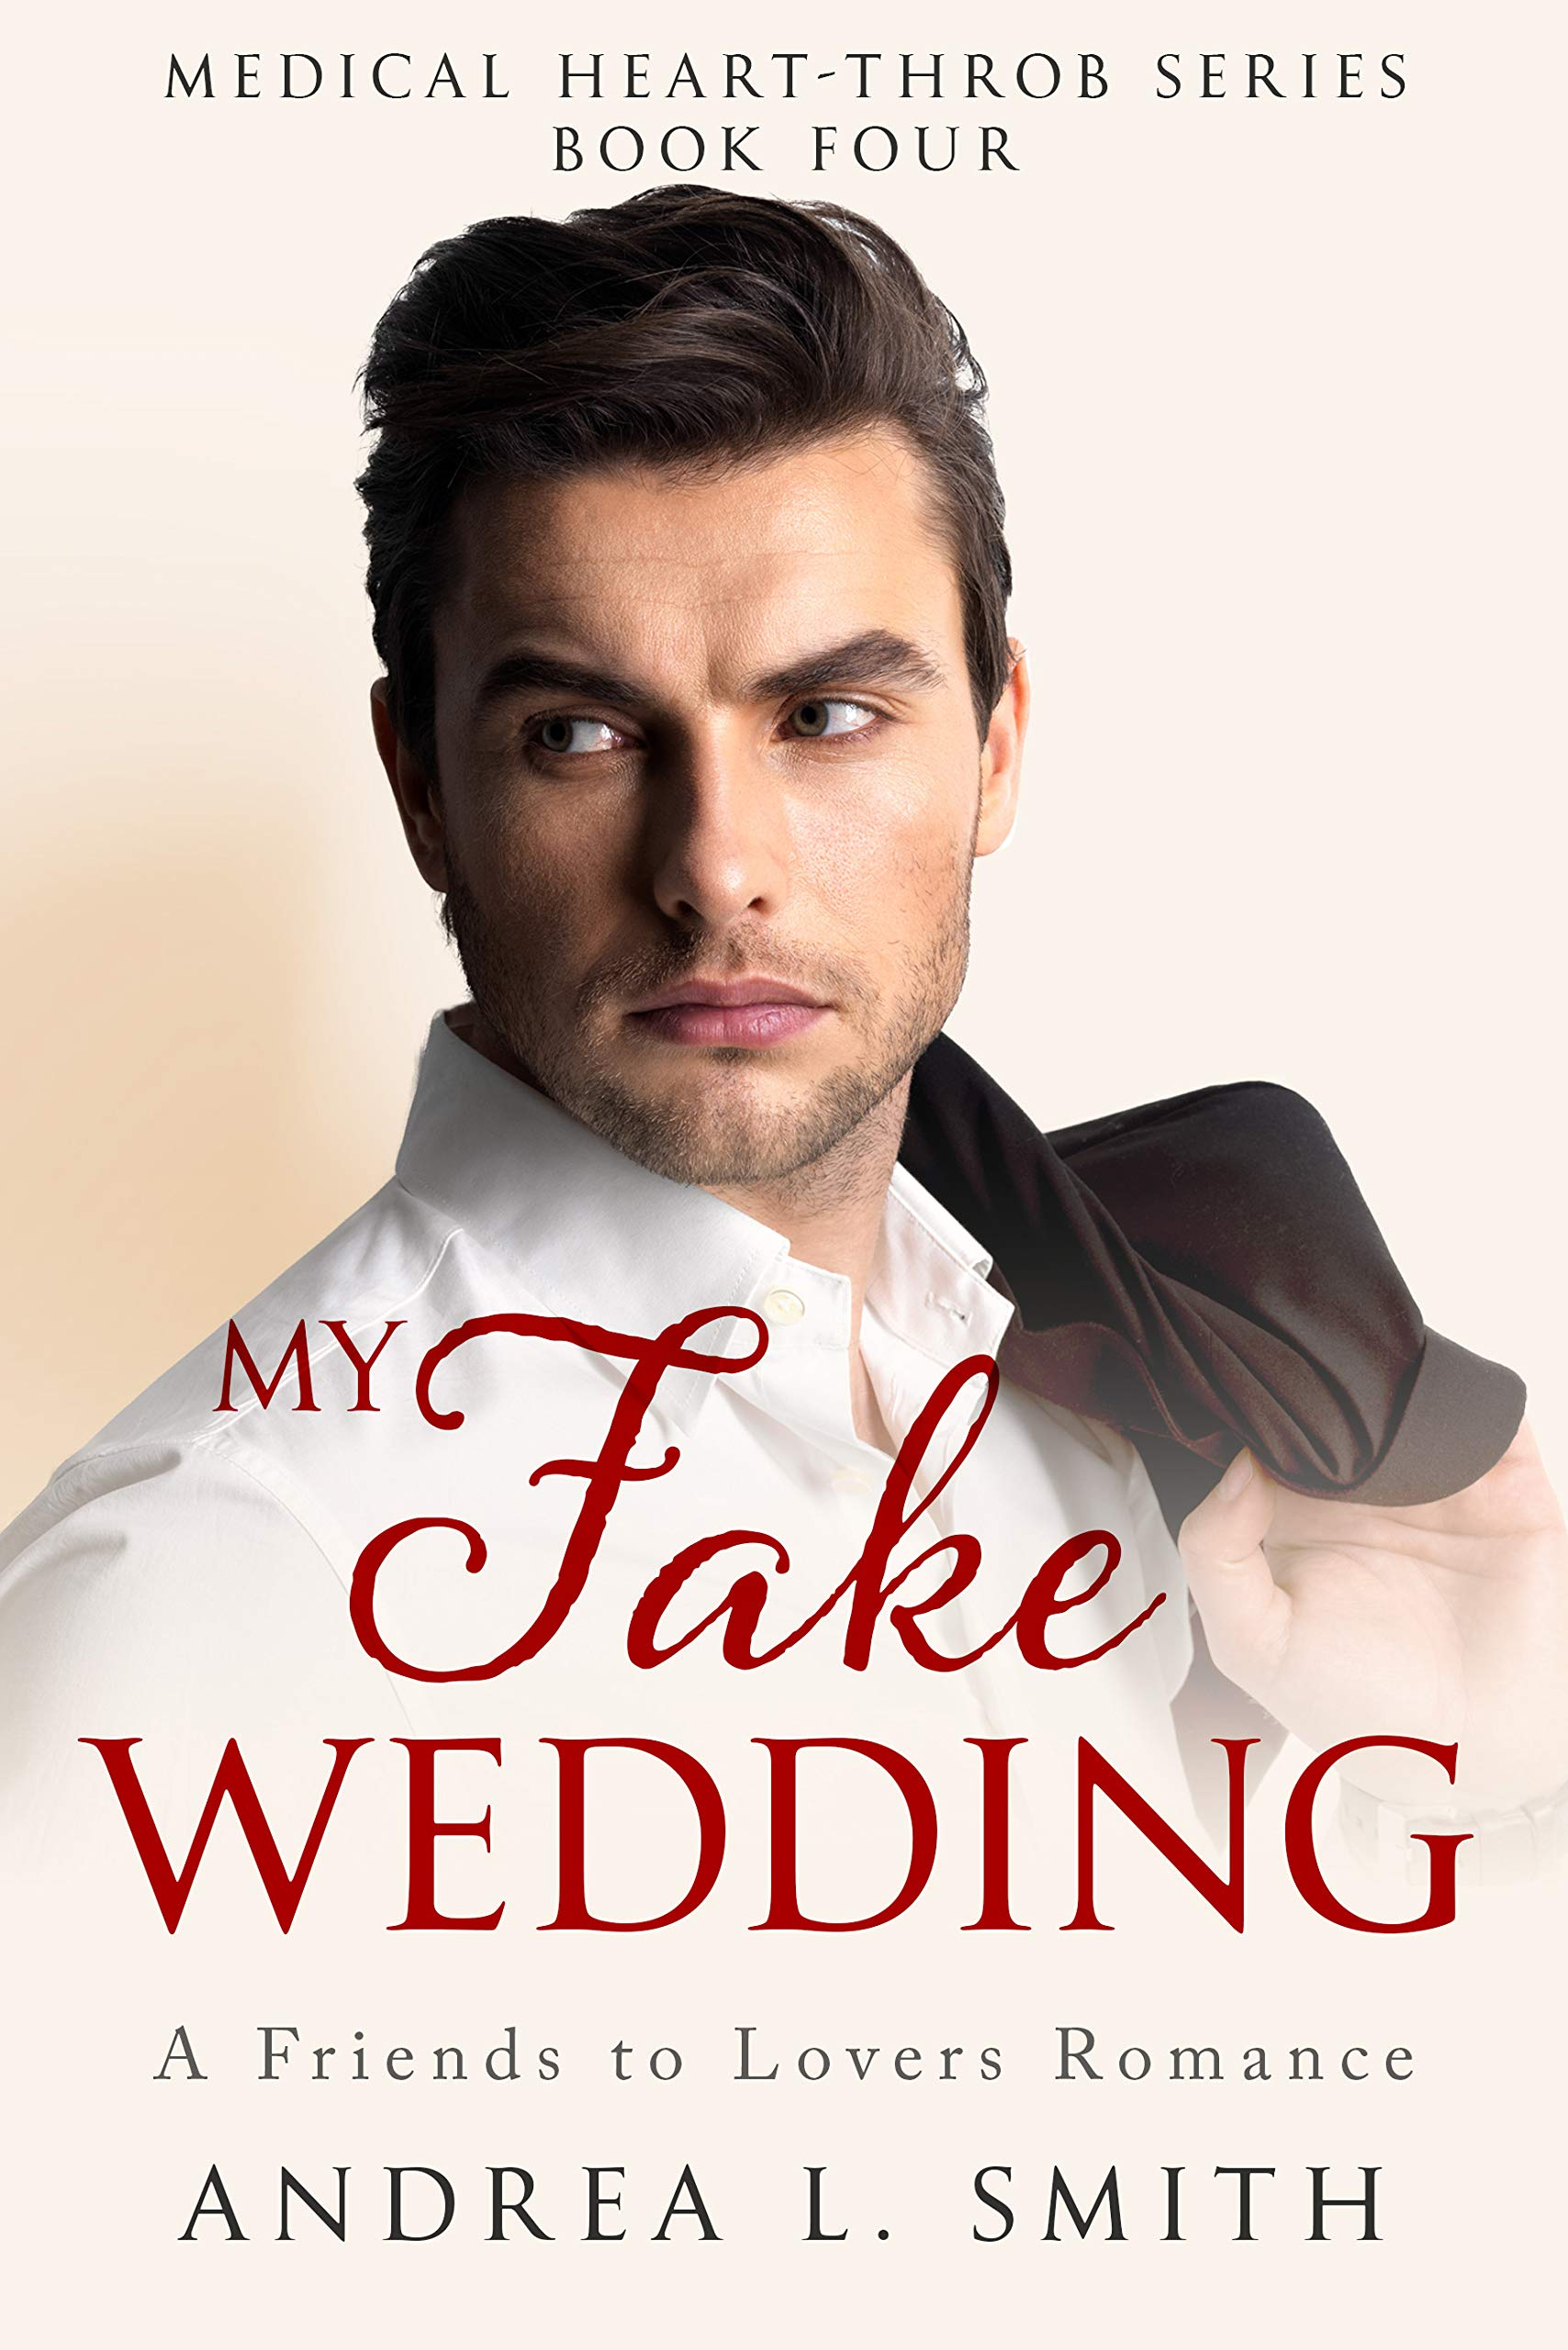 My Fake Wedding: A Best Friends to Lovers Romance: A Soulmate Romance Novel (Medical Heart Throb Series Book 4)